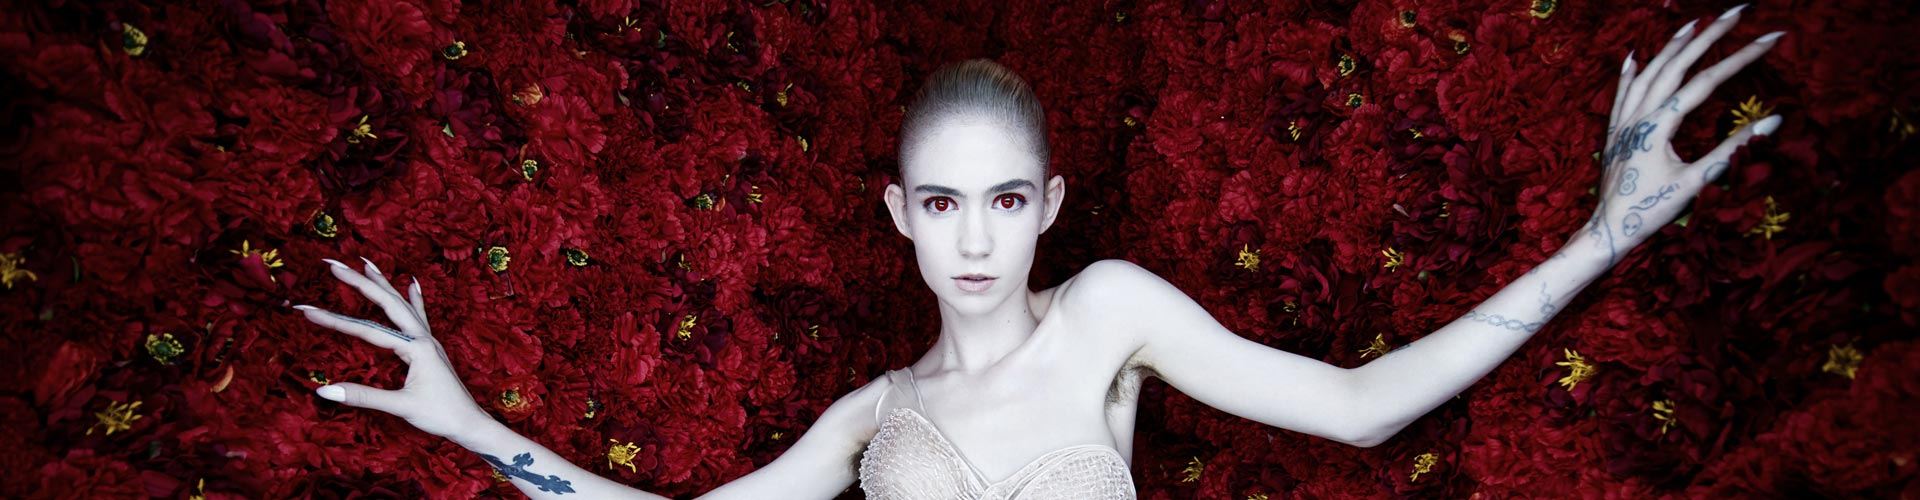 Video: Grimes – Kill V. Maim